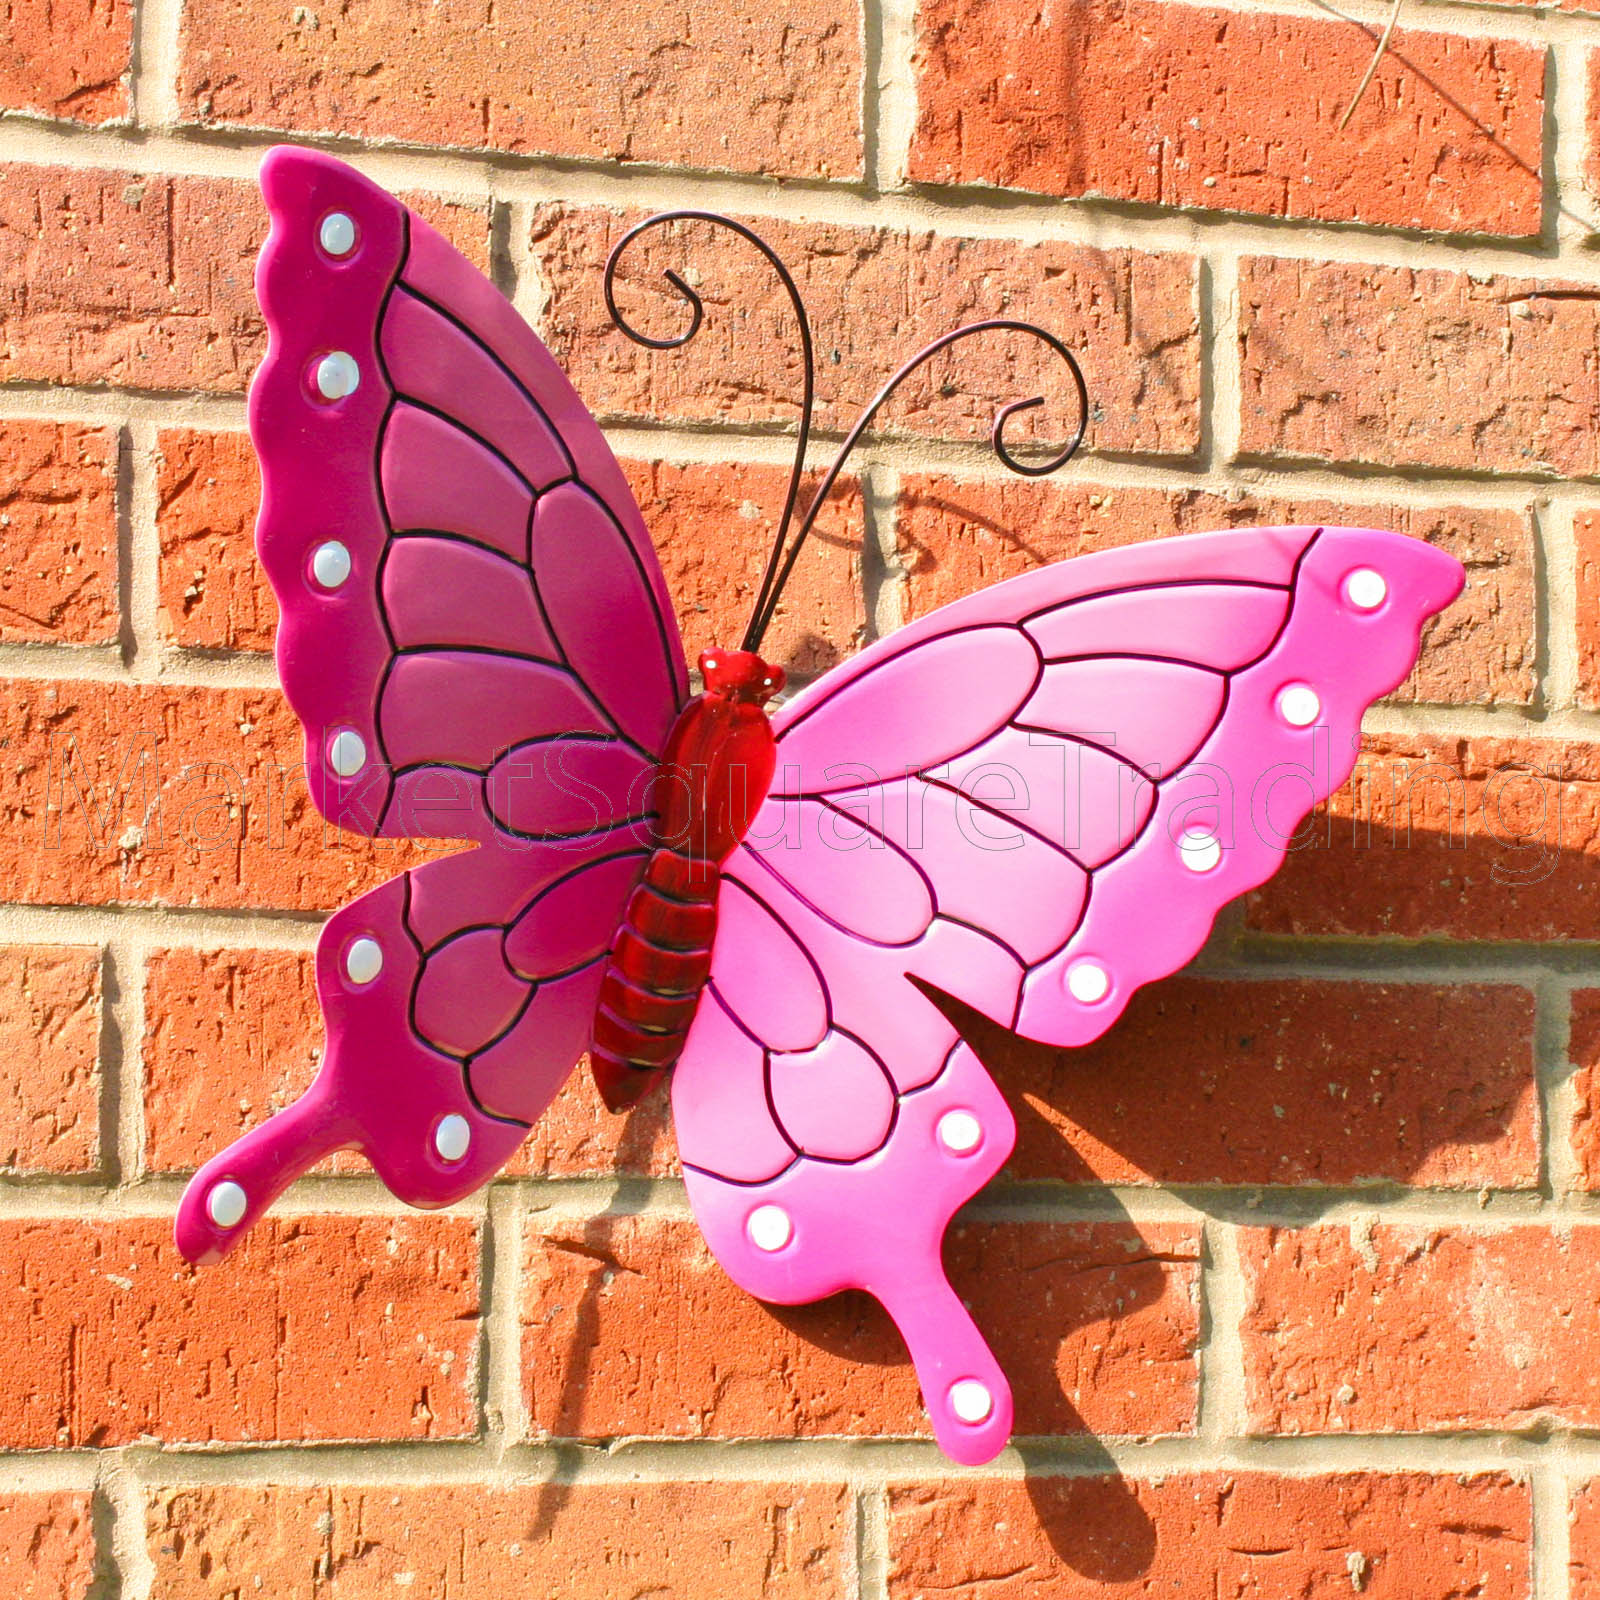 BUTTERFLY OUTDOOR EXT LRG NEW PINK METAL BUTTERFLIES GARDEN WALL ART DECORATE